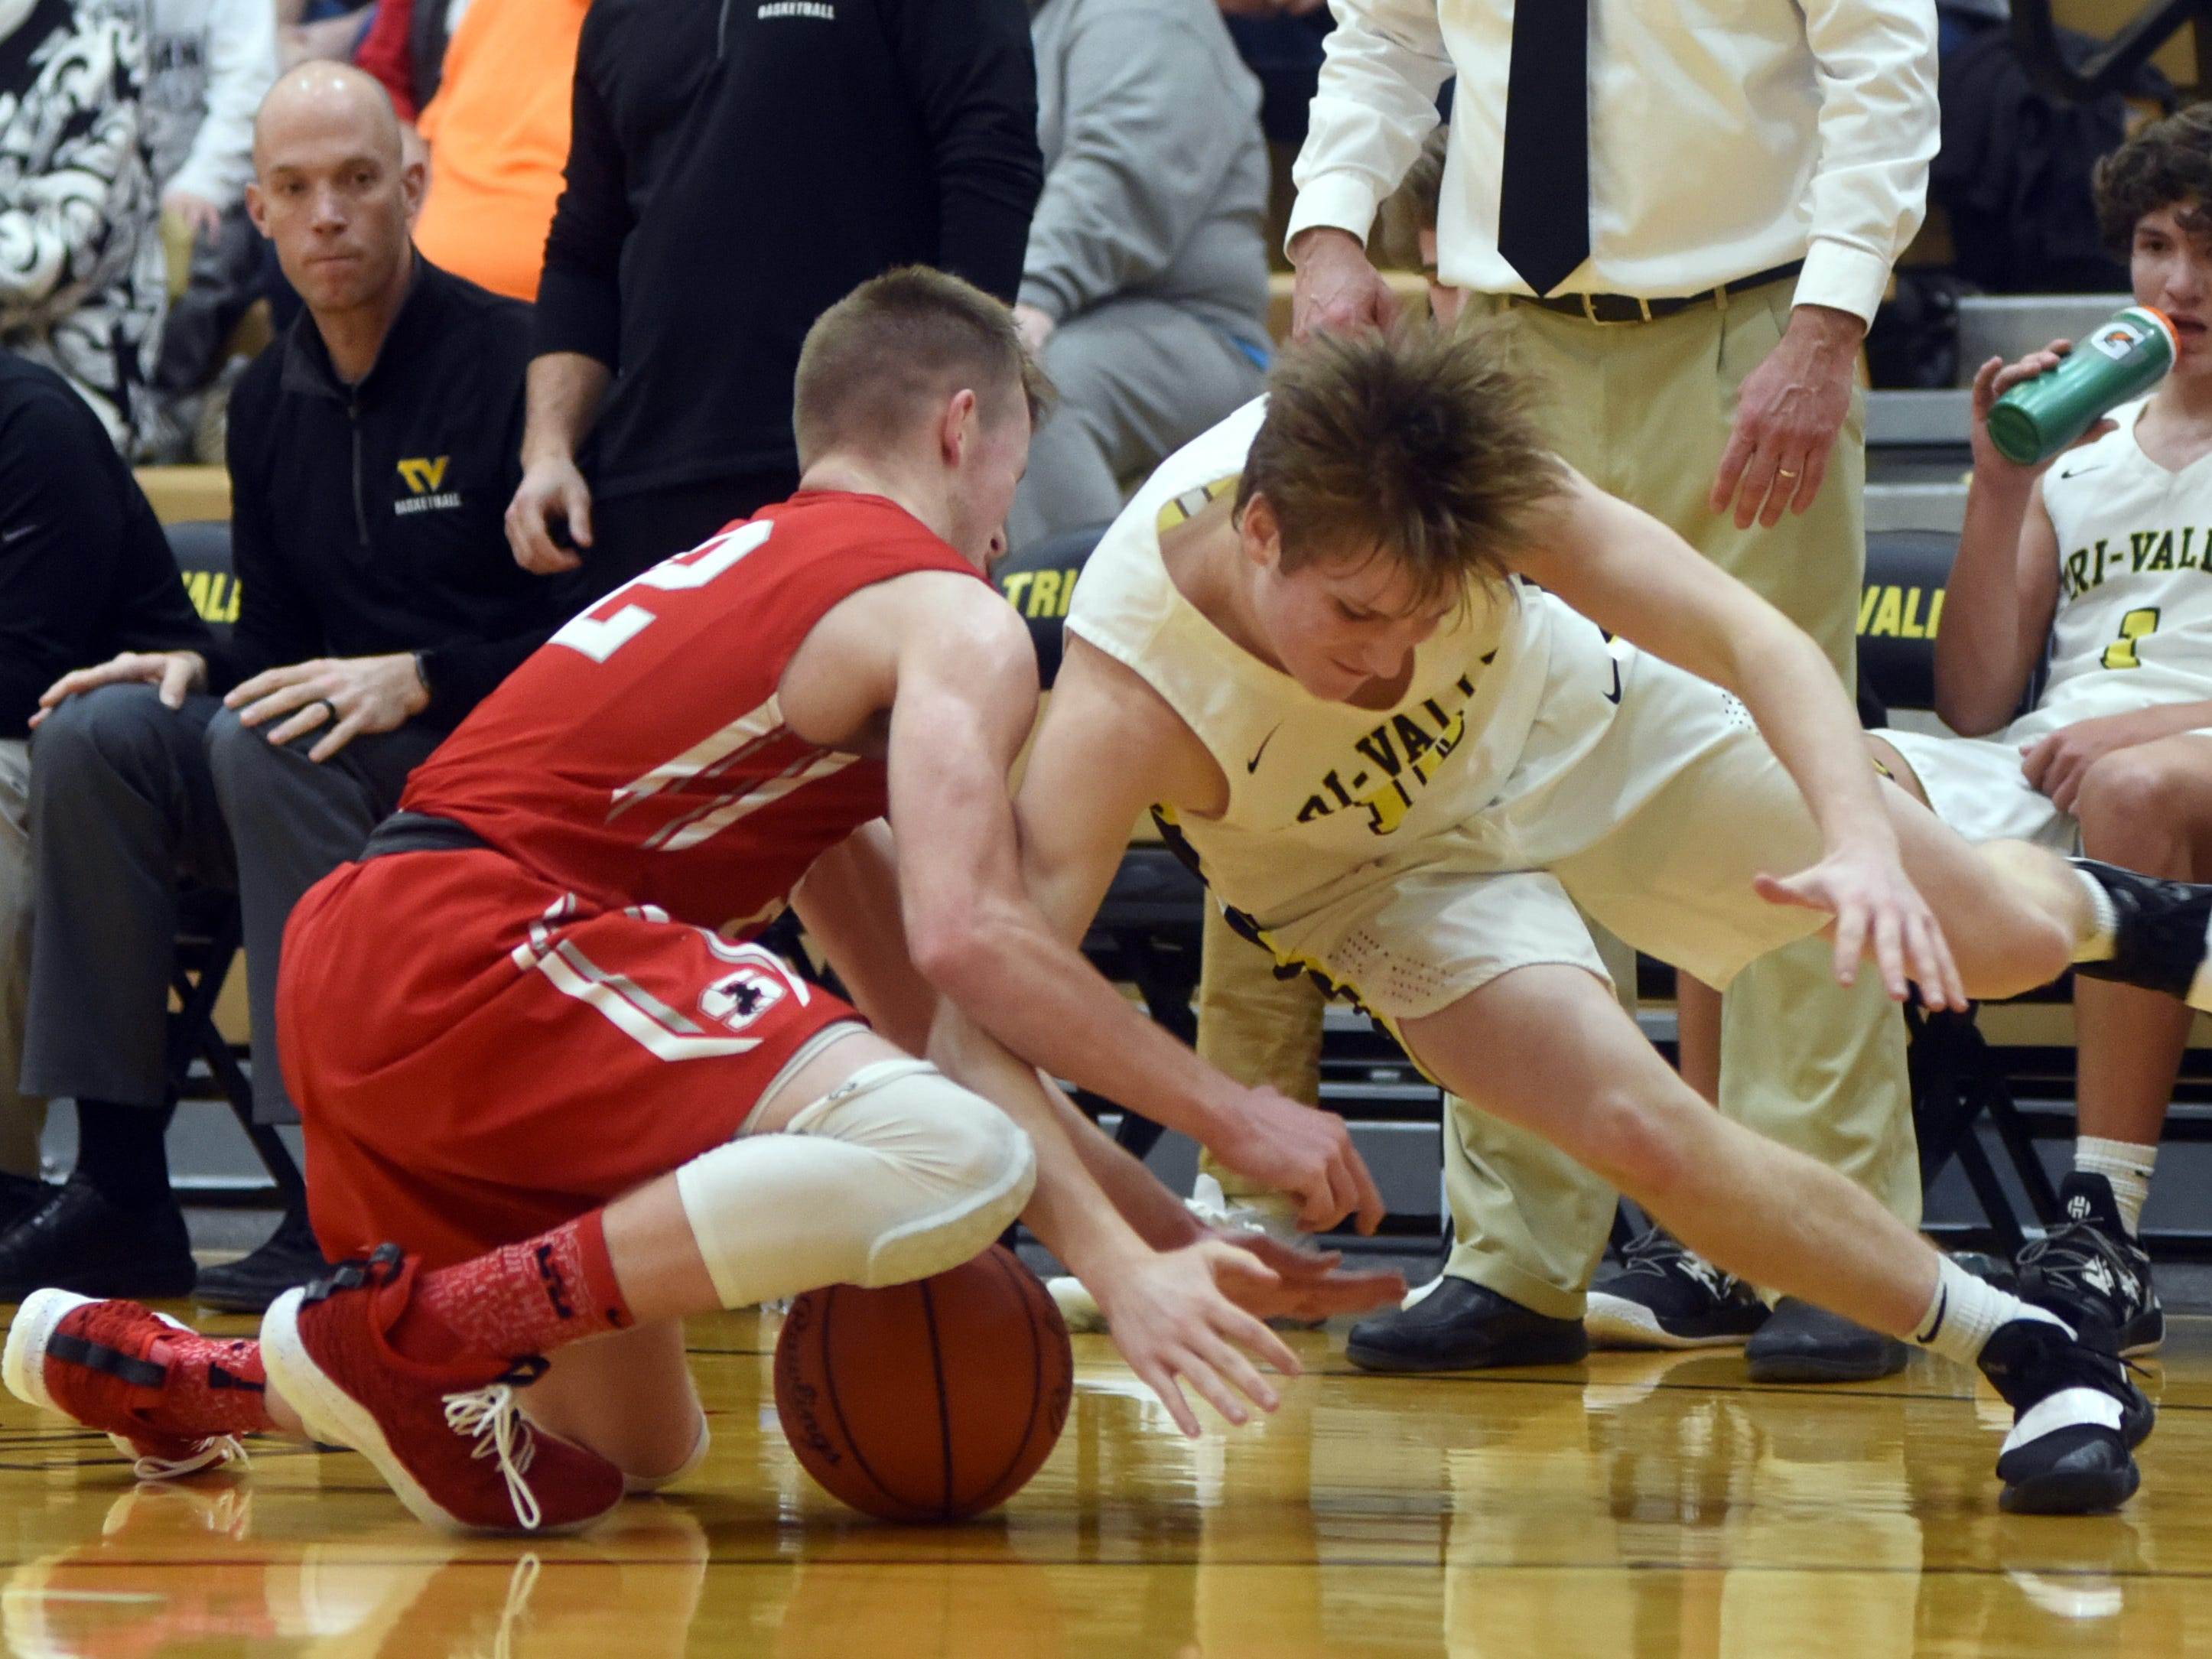 Sheridan's Landen Russell, left, and Tri-Valley's Jack Lyall go after a loose ball on Friday night in Dresden.